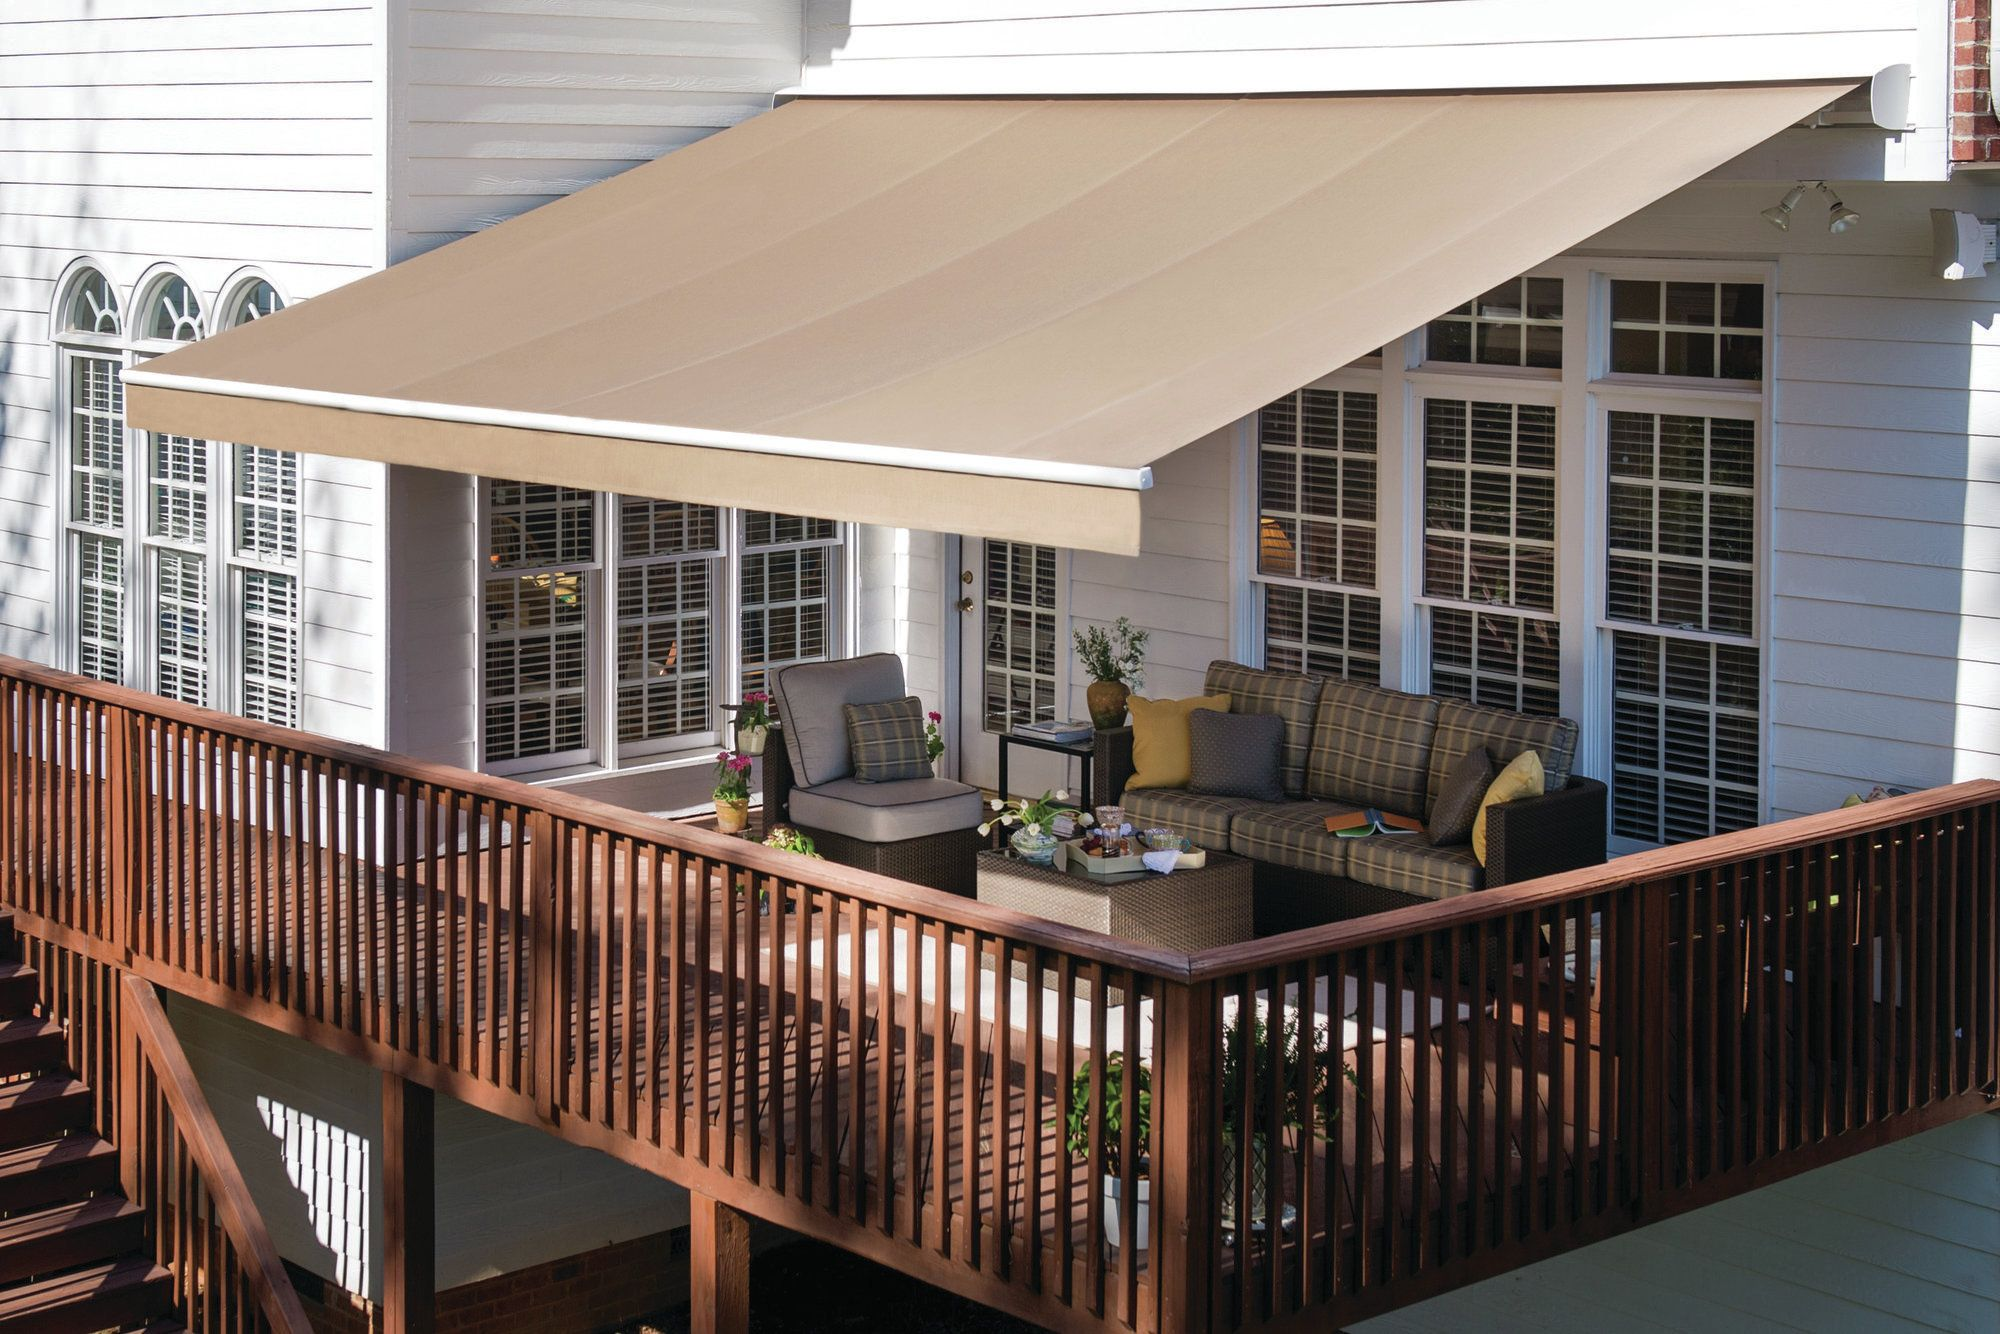 Retractable Awnings Come In Thousands Of Color And Style Combinations Motorized Awnings Are Powered By Somfy Motors An Outdoor Awnings Deck Awnings Deck Shade